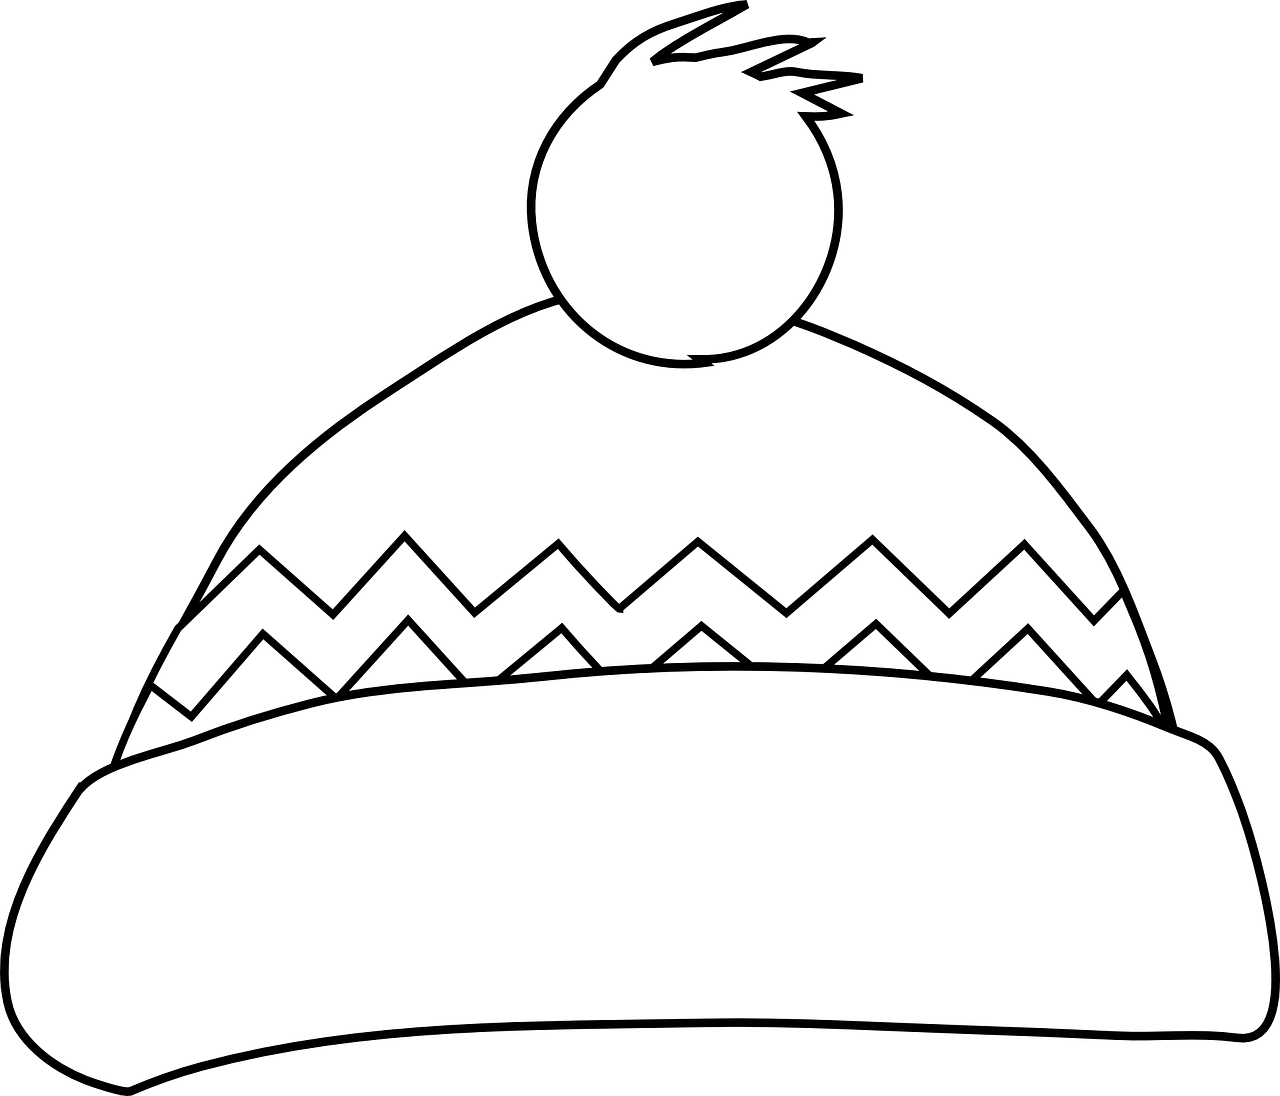 Winter Clothing Colouring Pages - In The Playroom